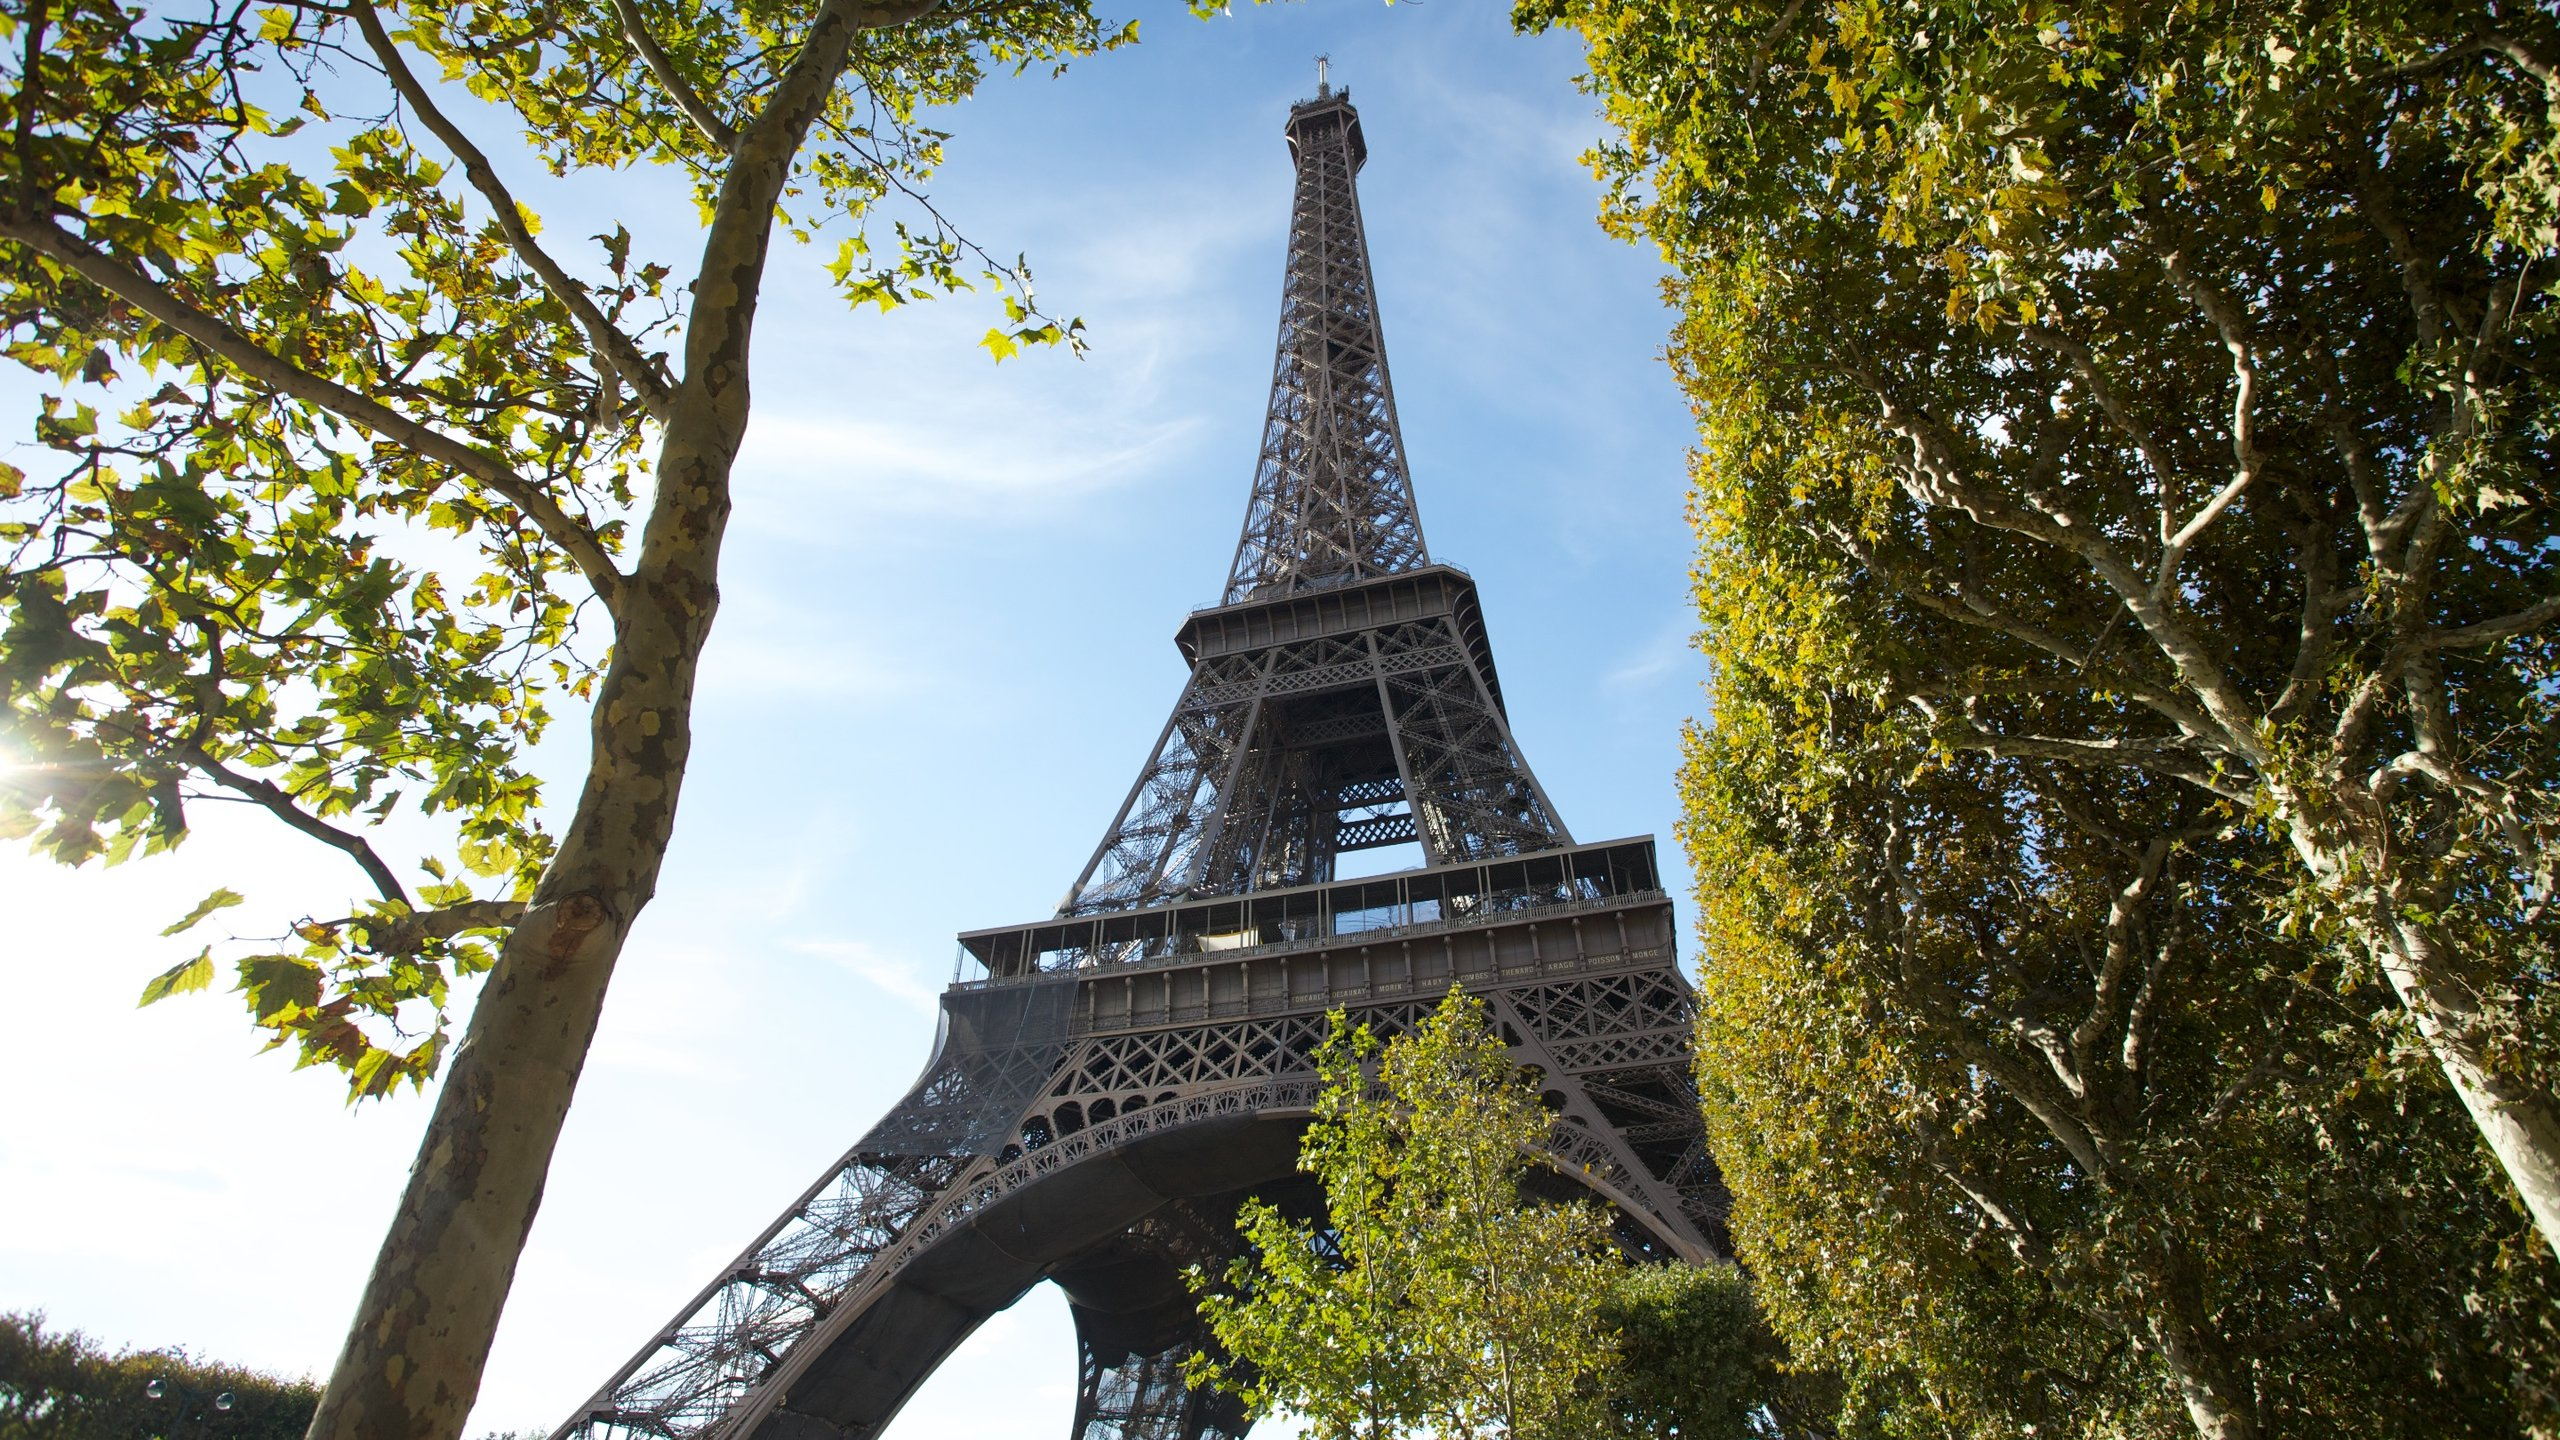 10 Best Hotels Closest To Eiffel Tower In Paris For 2020